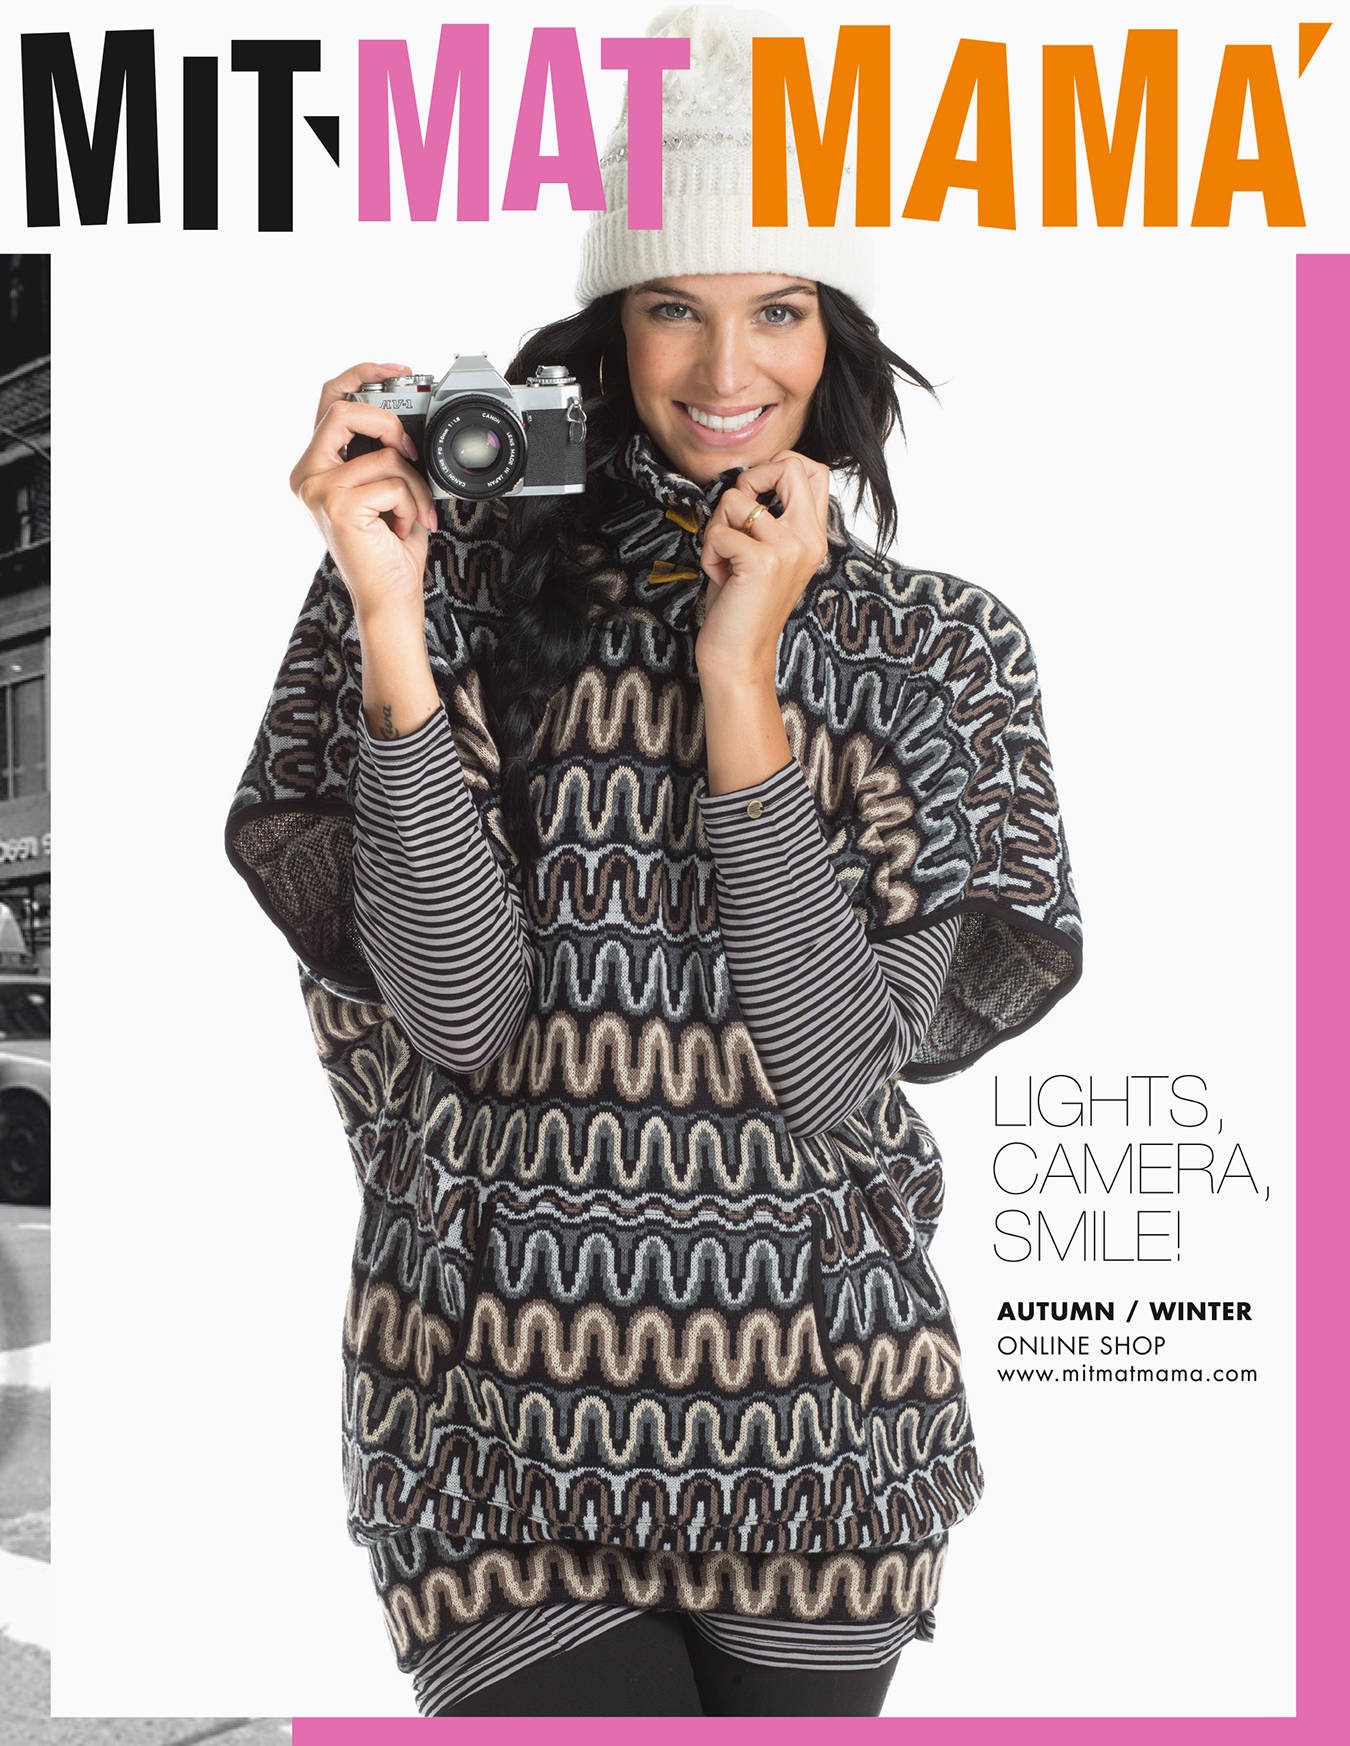 «Mit Mat Mama» Season Catalogue